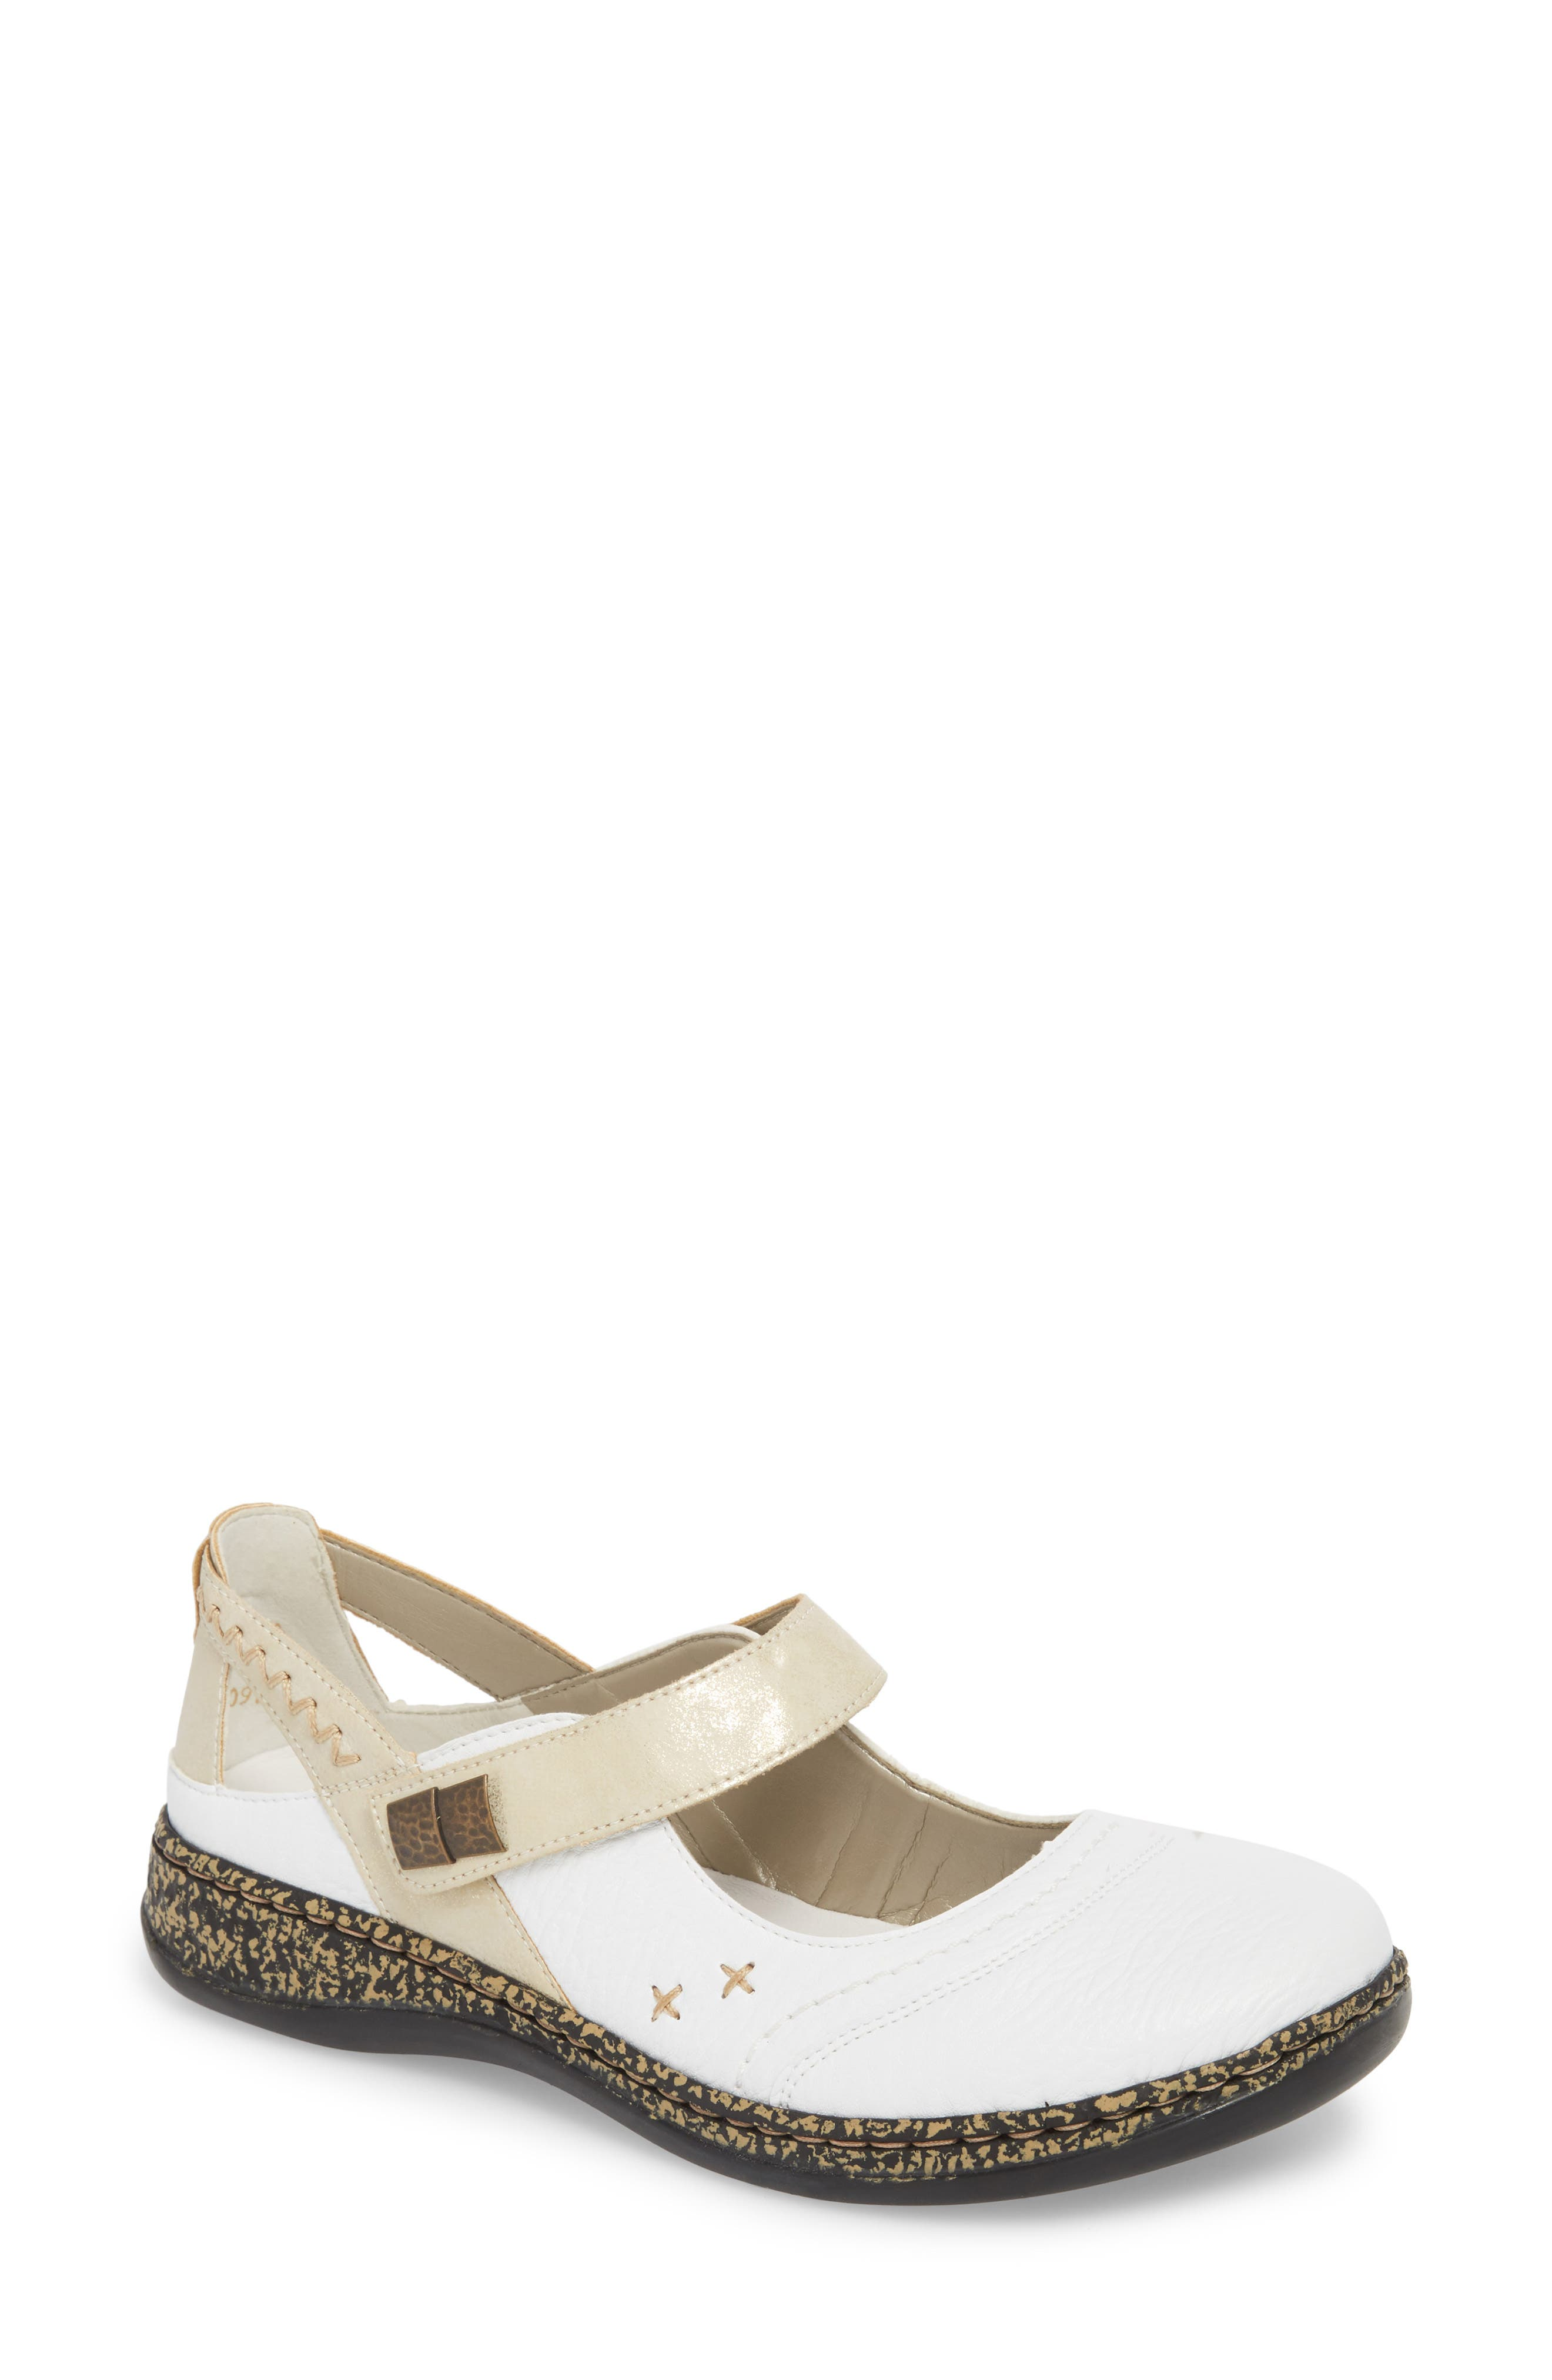 Daisy 78 Mary Jane Flat,                         Main,                         color, White/ Gold Synthetic Leather